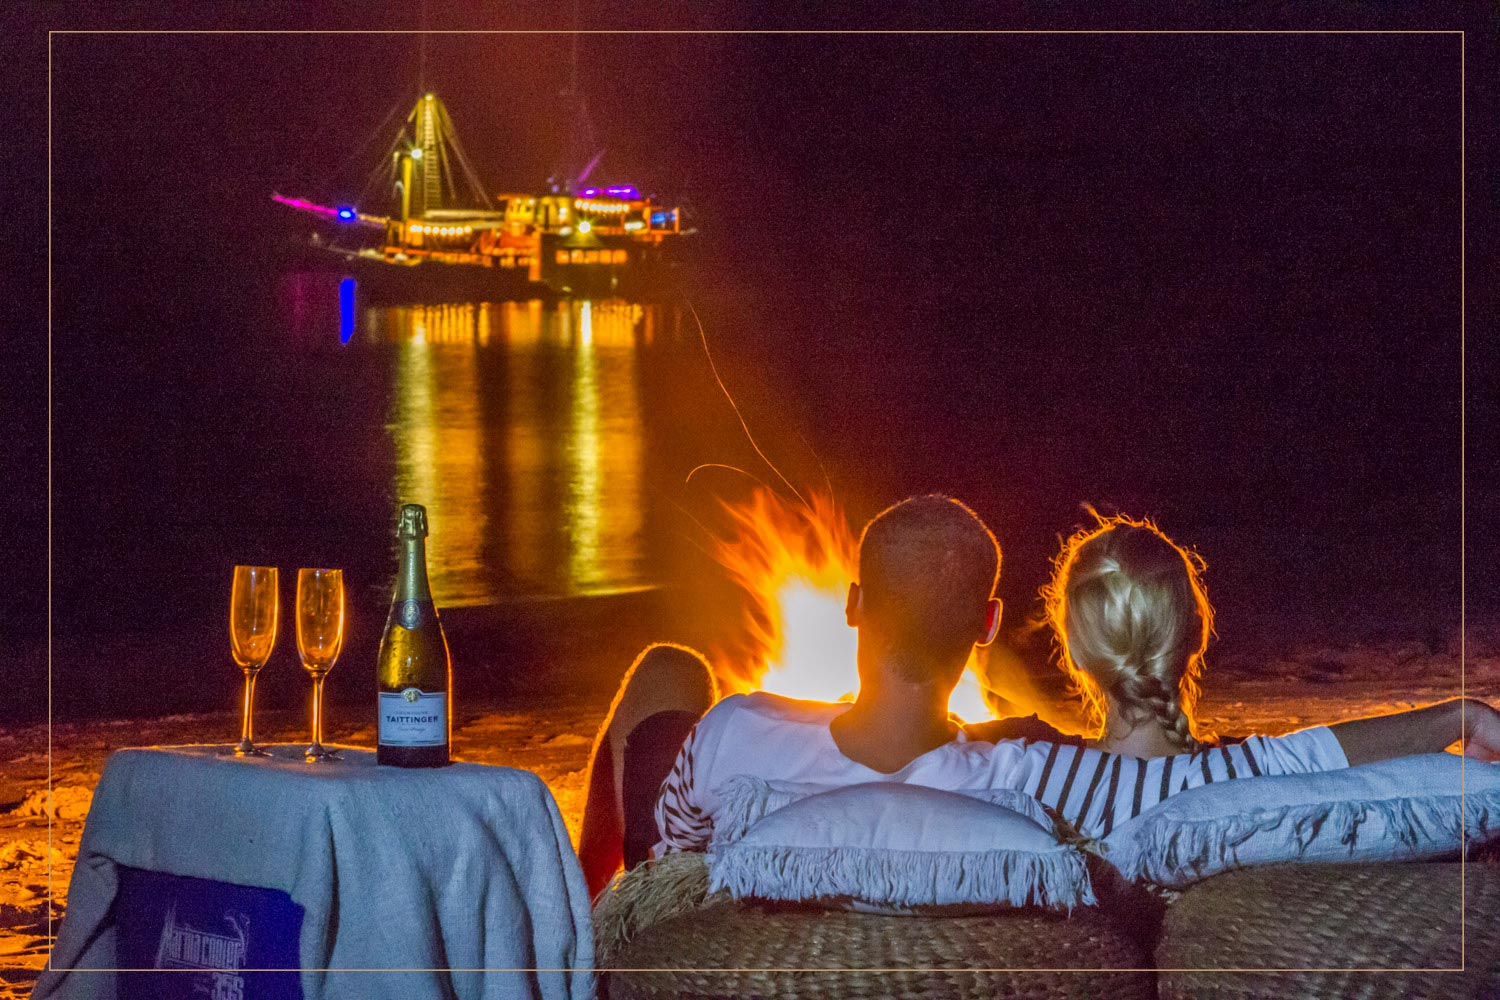 FIRE ON THE BEACH - A private dinner with fire on the beach can be offered and suggestedto you during all your stay. You will enjoy a breathtaking view of the illuminated boat in the middle of the sea.